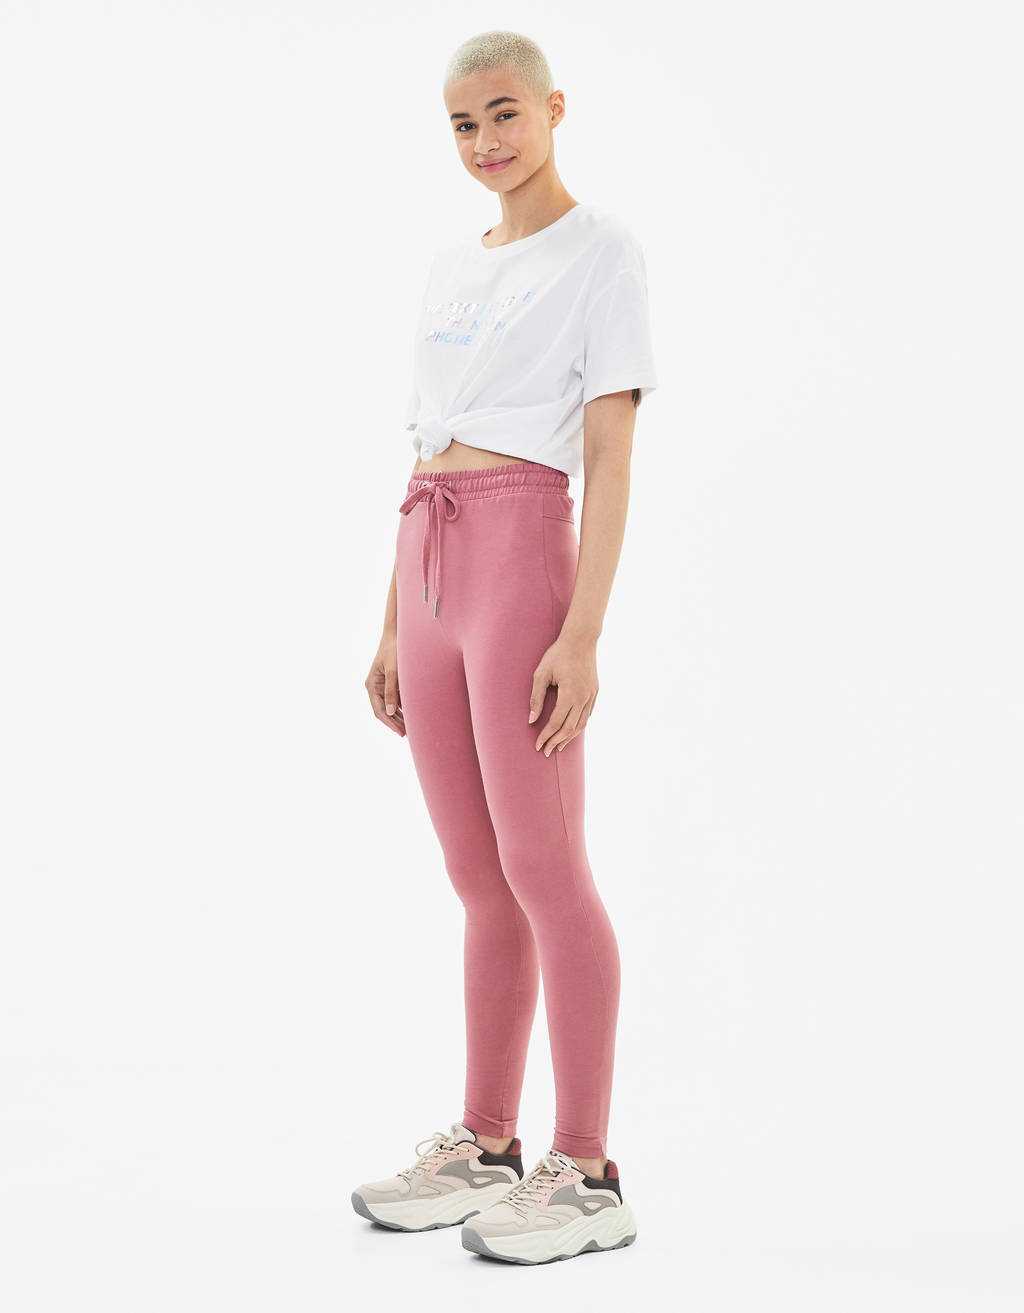 Plush jersey leggings